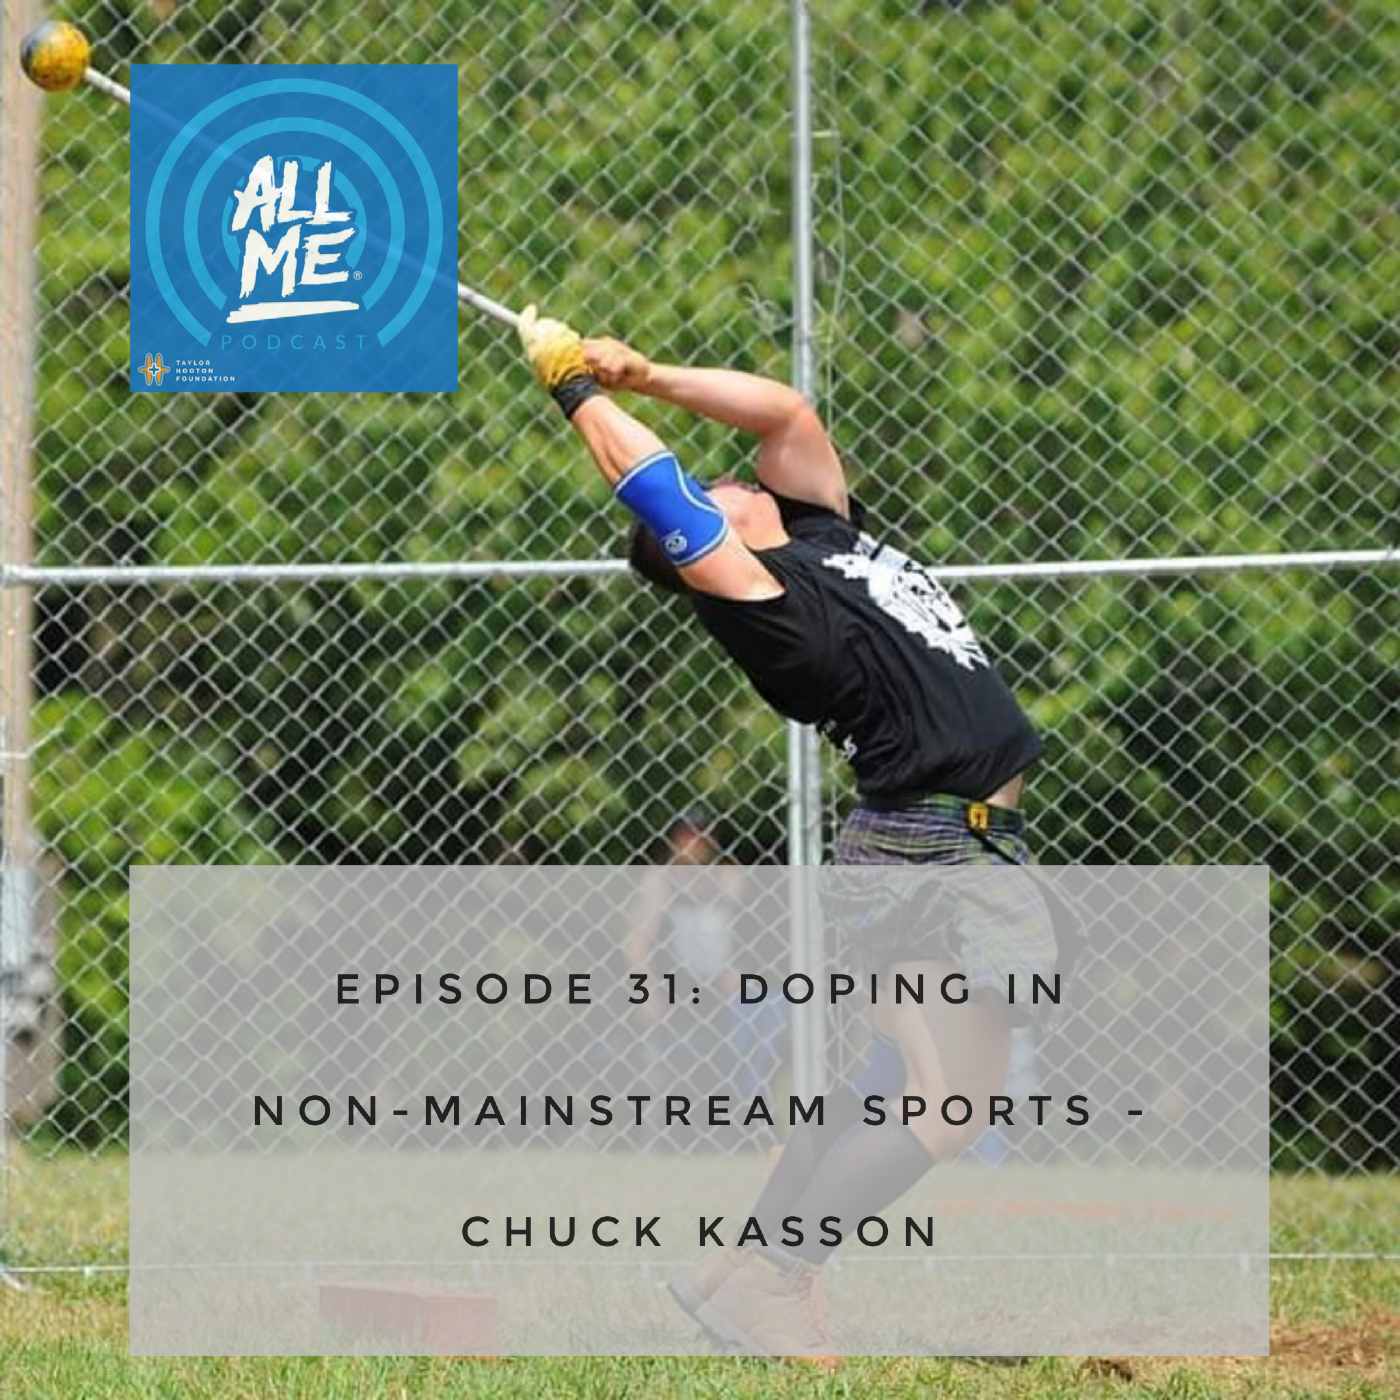 Episode 31: Doping in Non-Mainstream Sports – Chuck Kasson